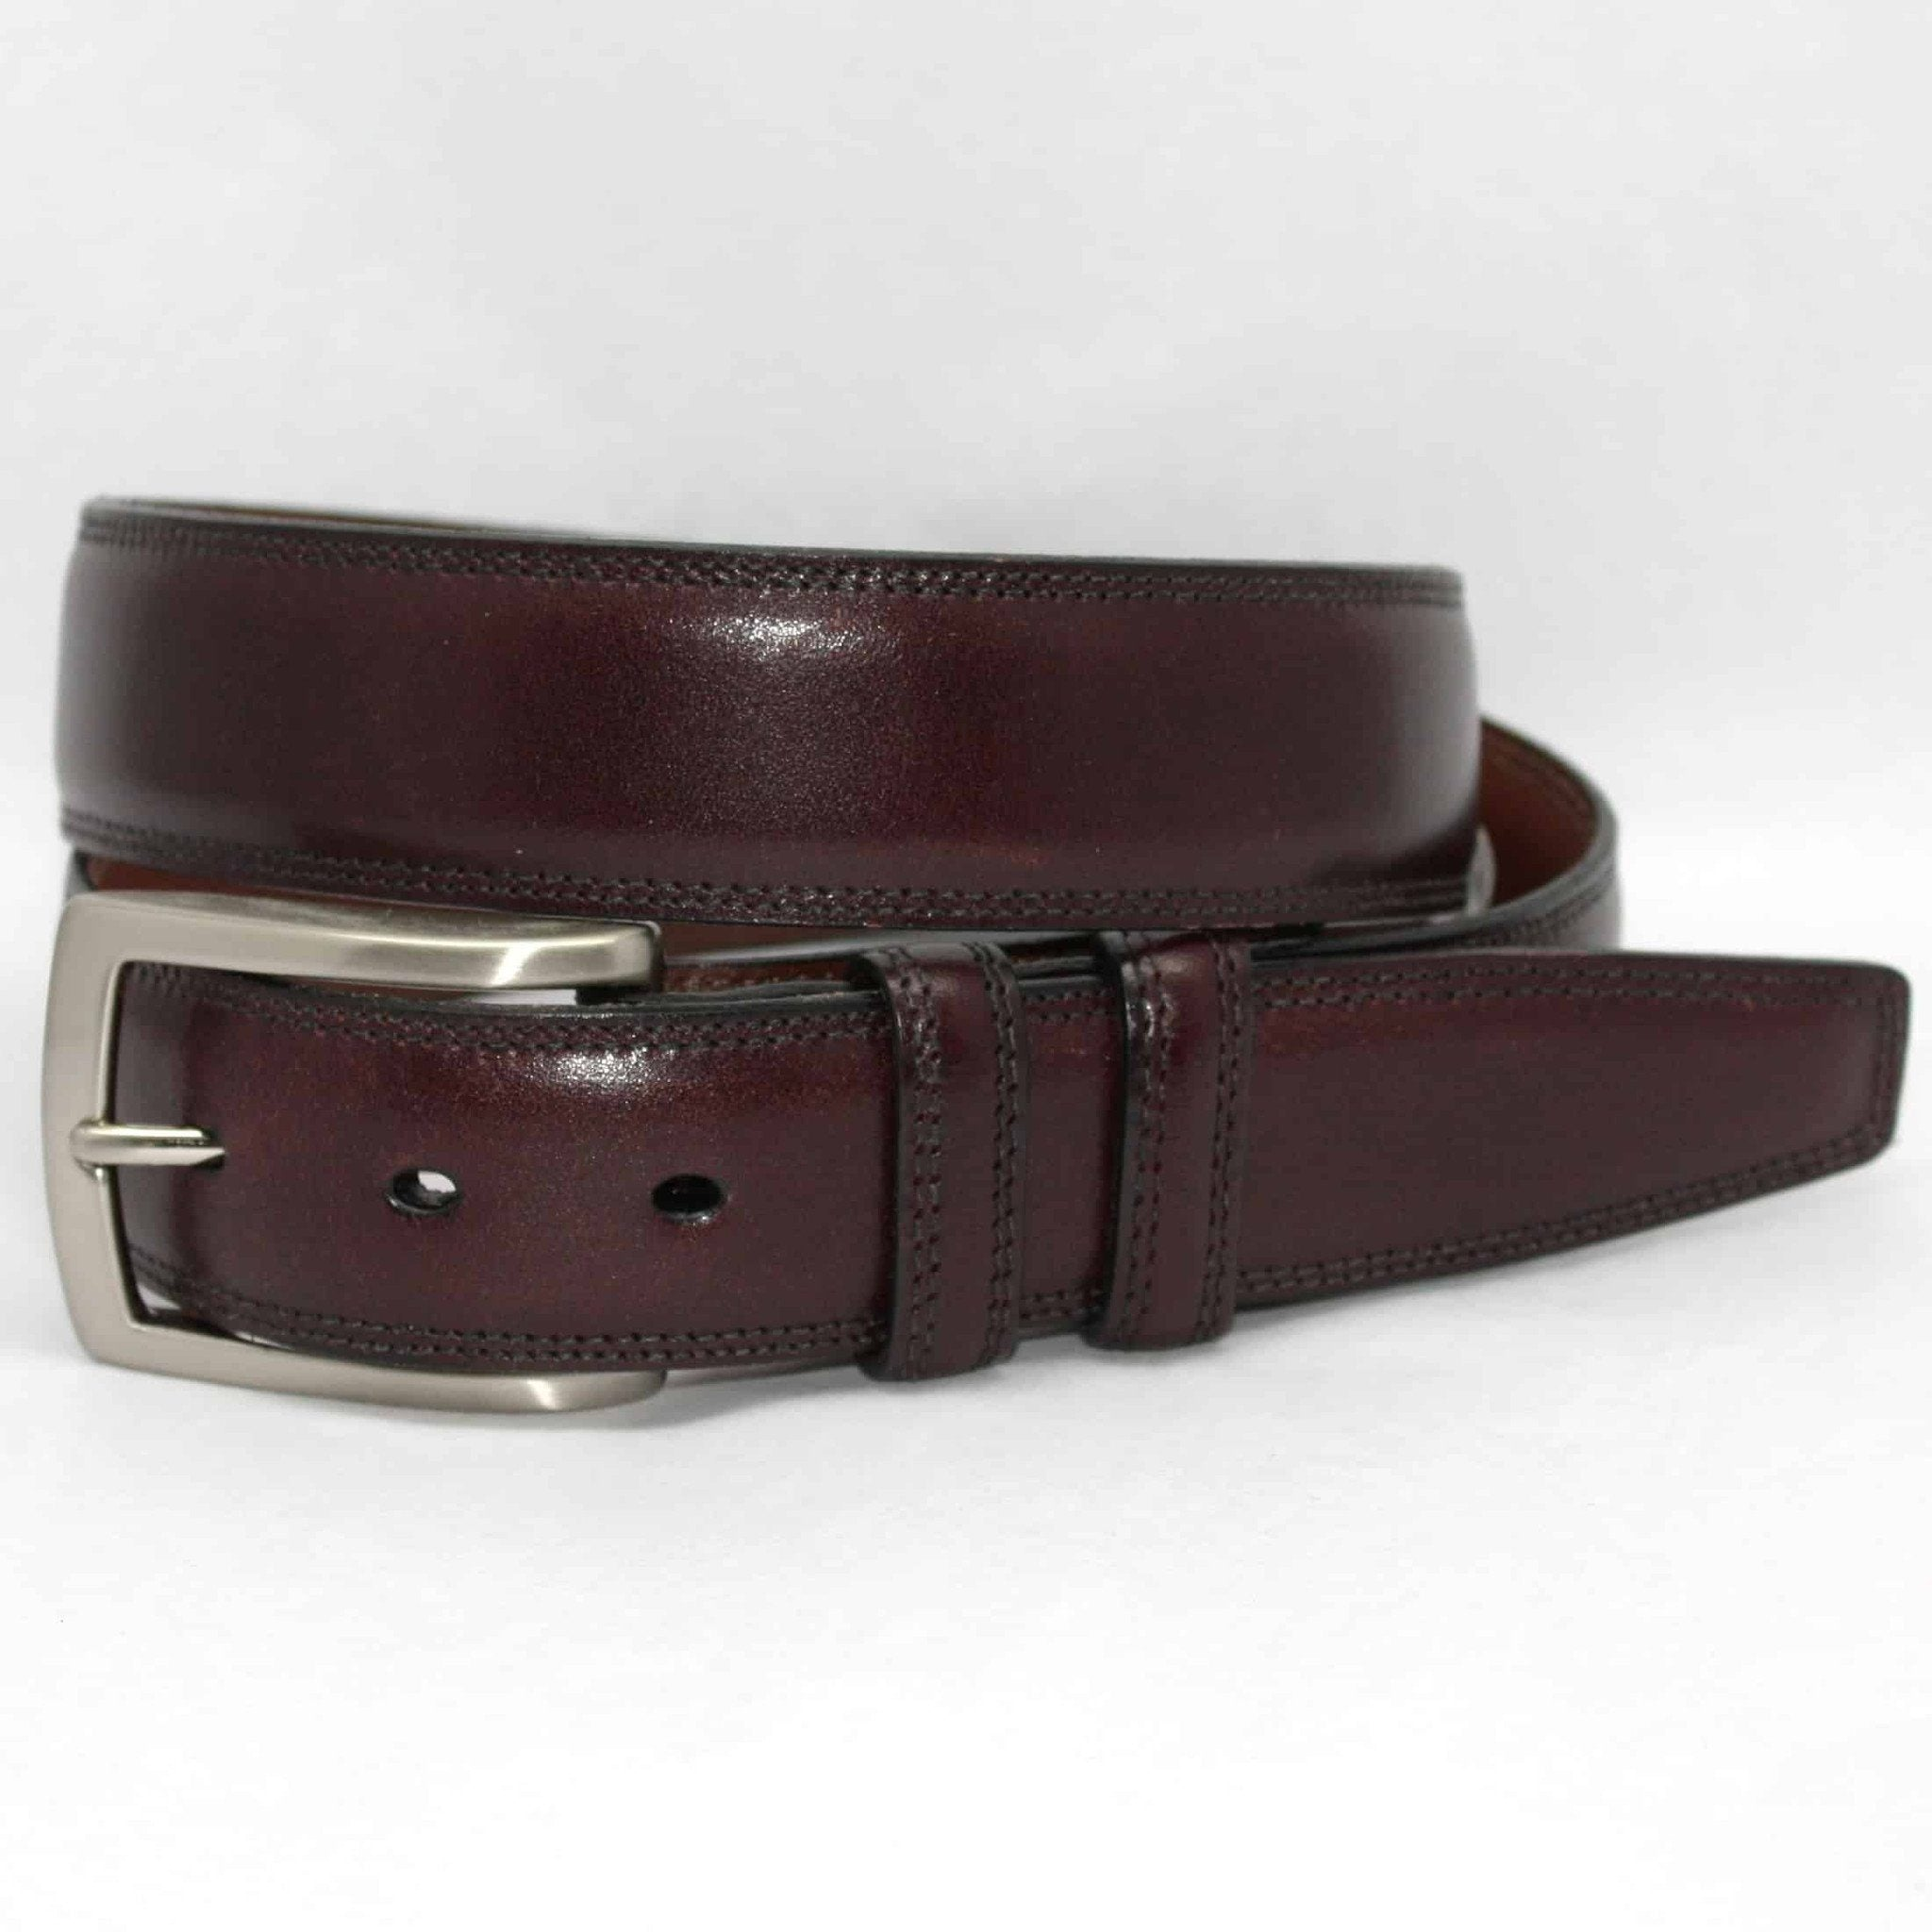 Italian Burnished Kipskin Belt - Burgundy (Cordovan),BELT,GentRow.com, | GentRow.com